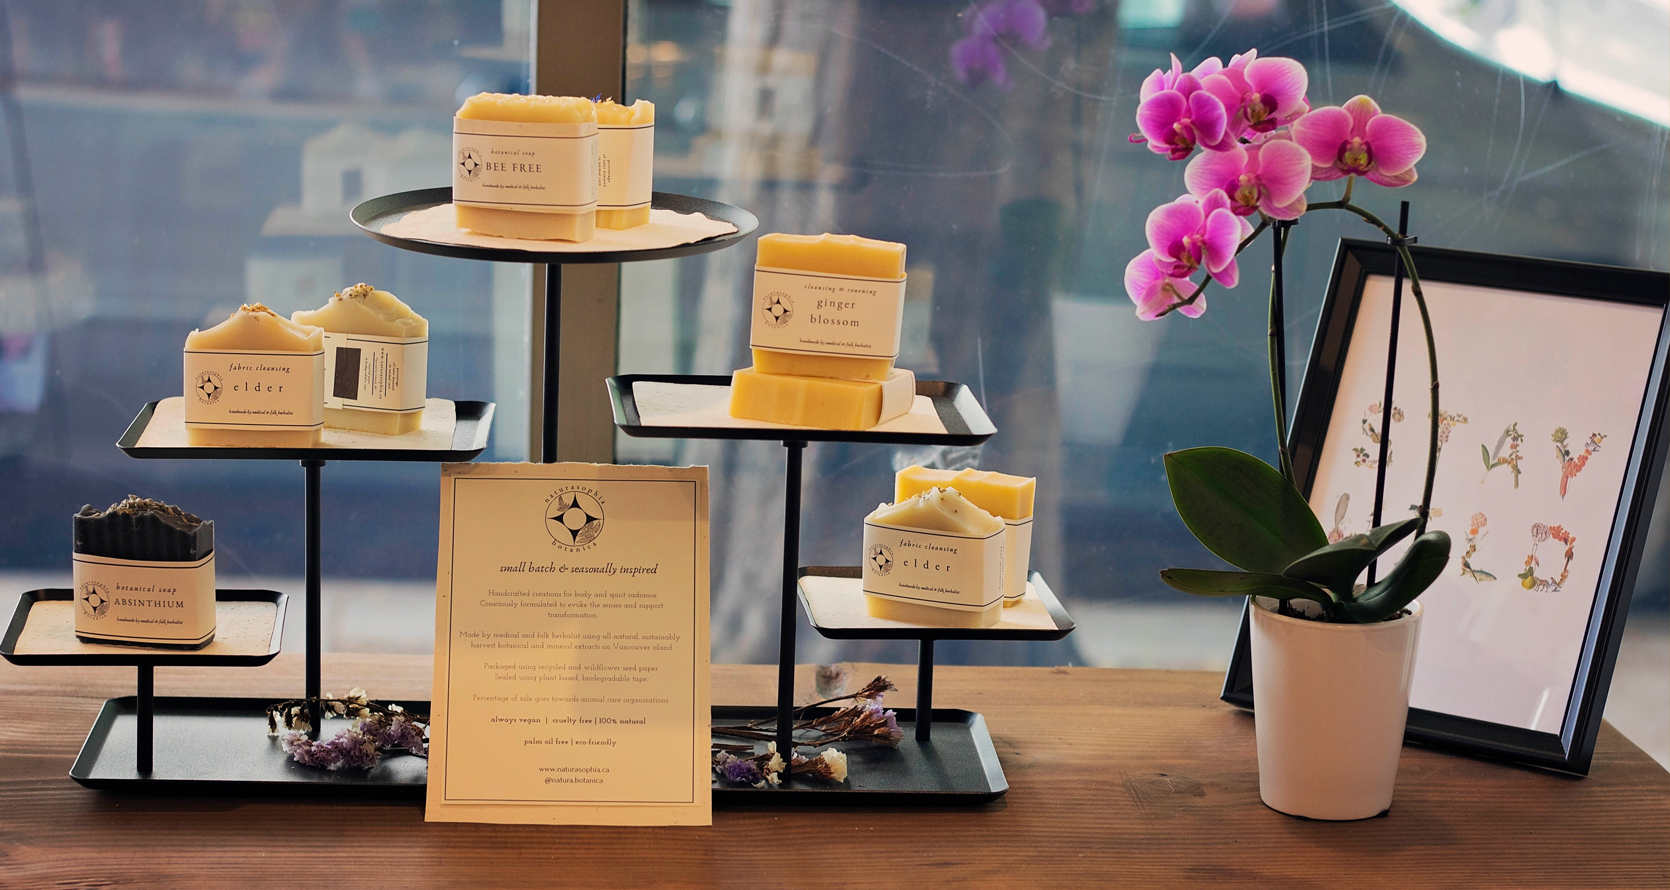 An in-store display of Botanical Soaps, made in small batches and inspired by the season, available at Apotheka Herbal.